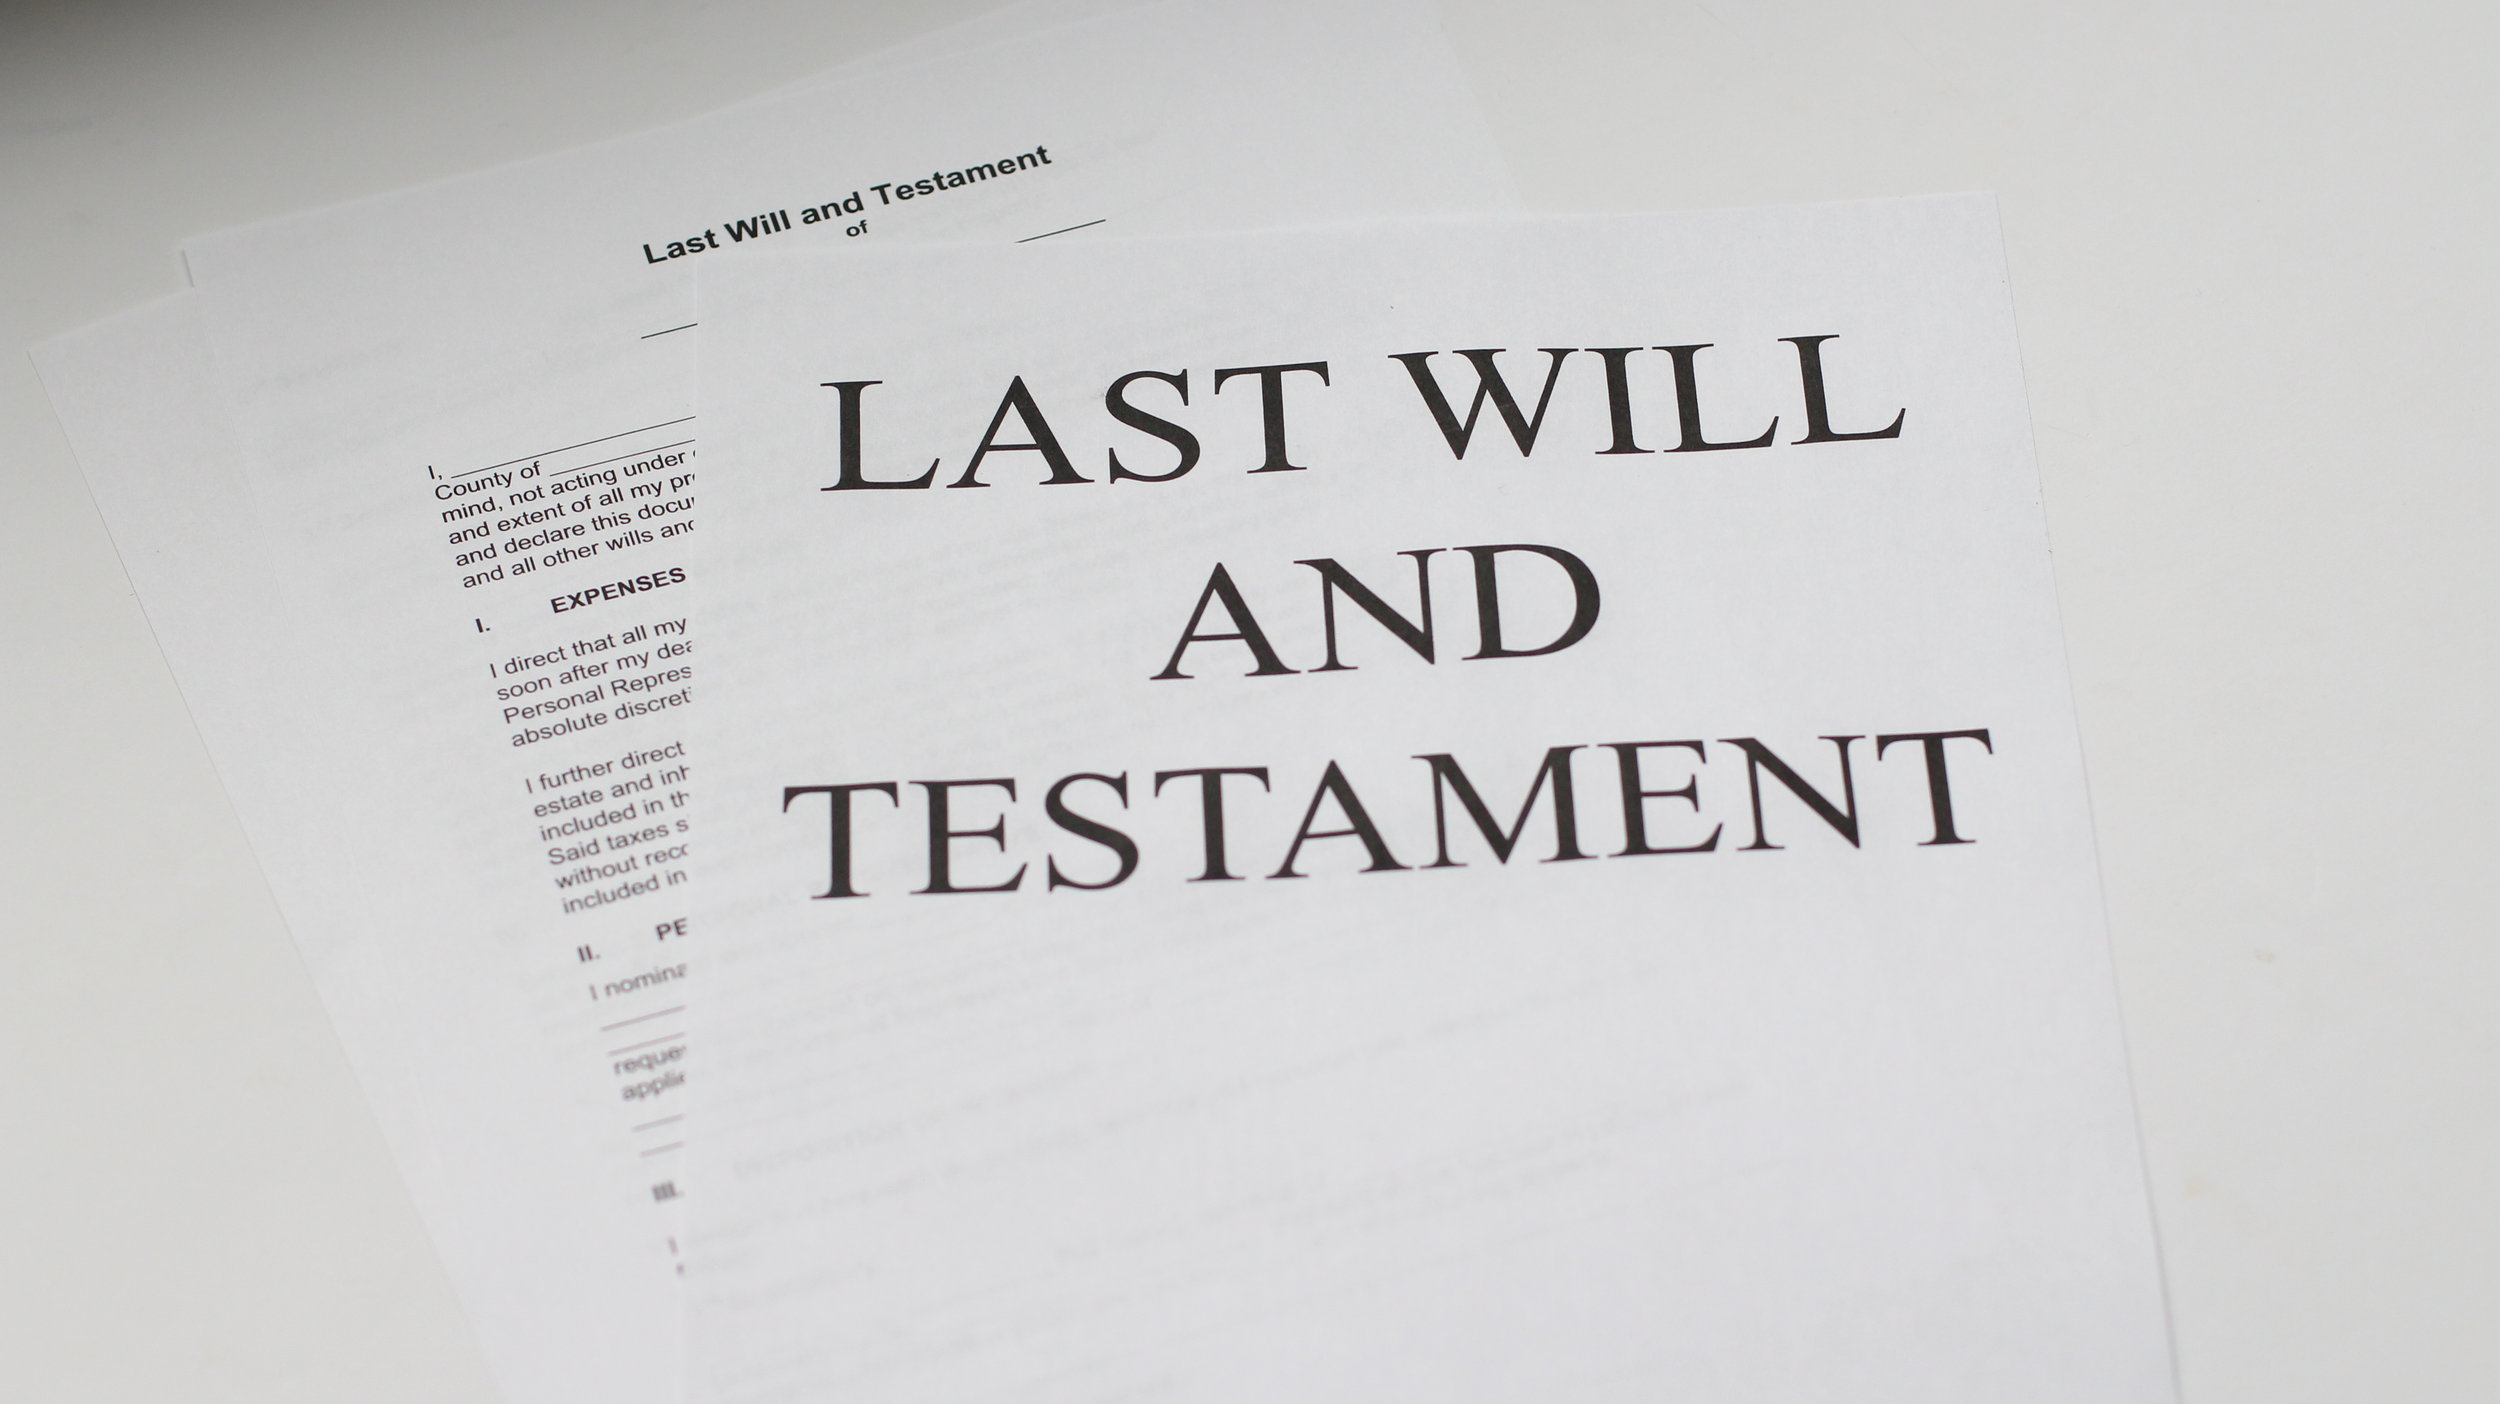 last will and testament power of attorney trust revocable trust deeds medical directives probate elder law estate planning